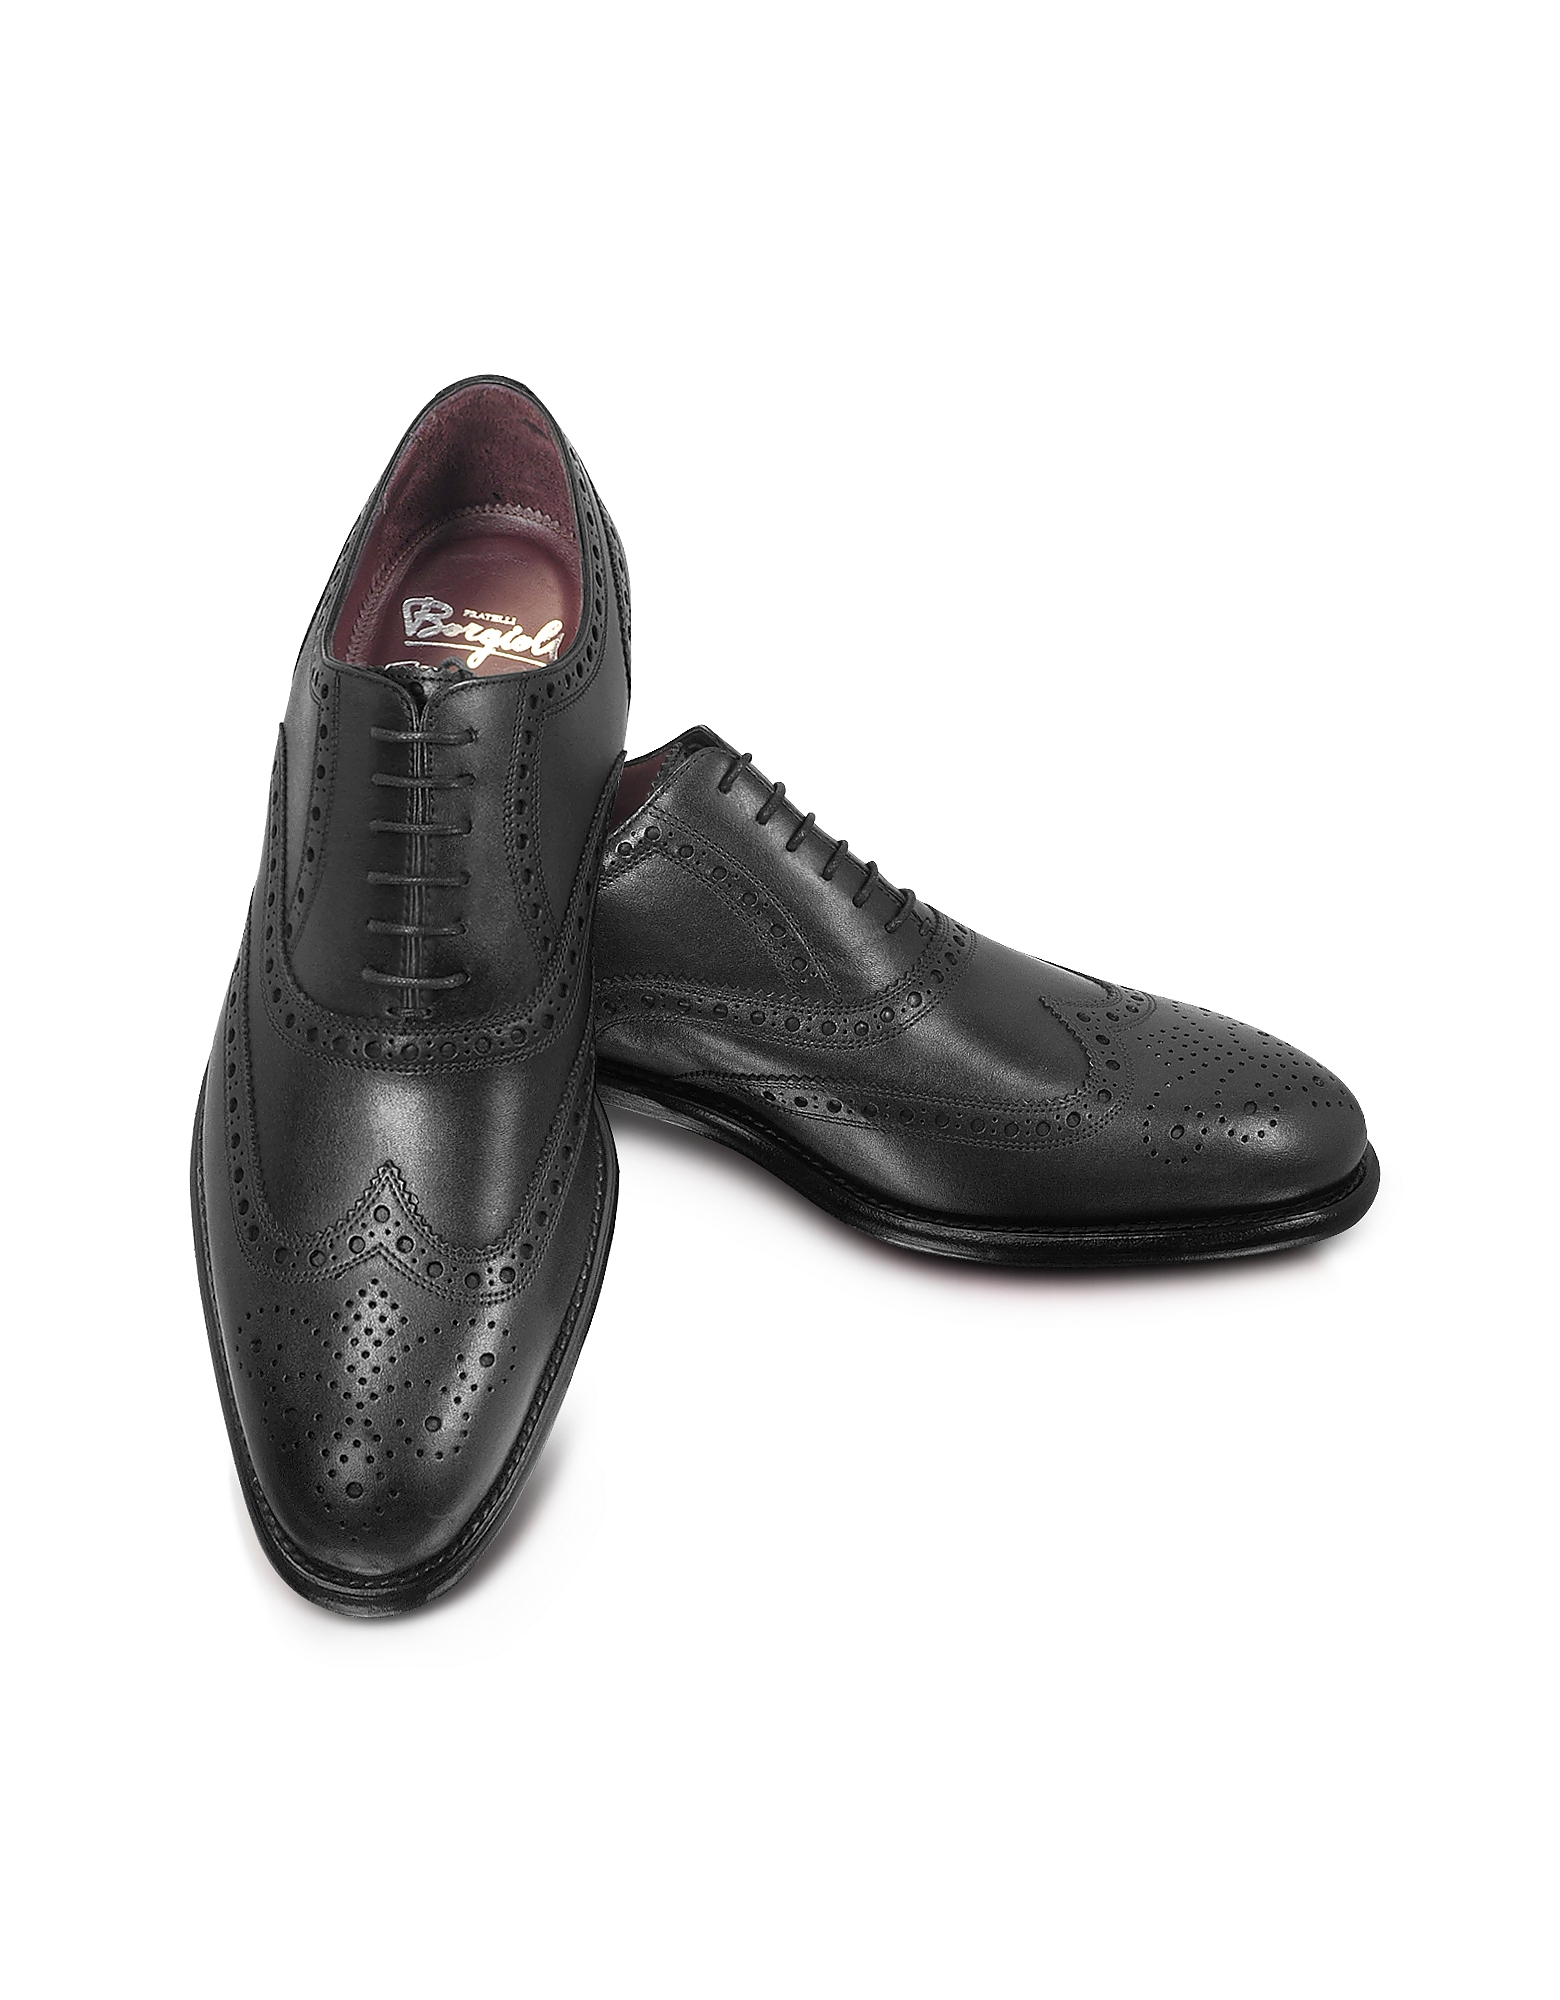 Fratelli Borgioli Shoes, Cayenne - Brogued Wingtip Oxford